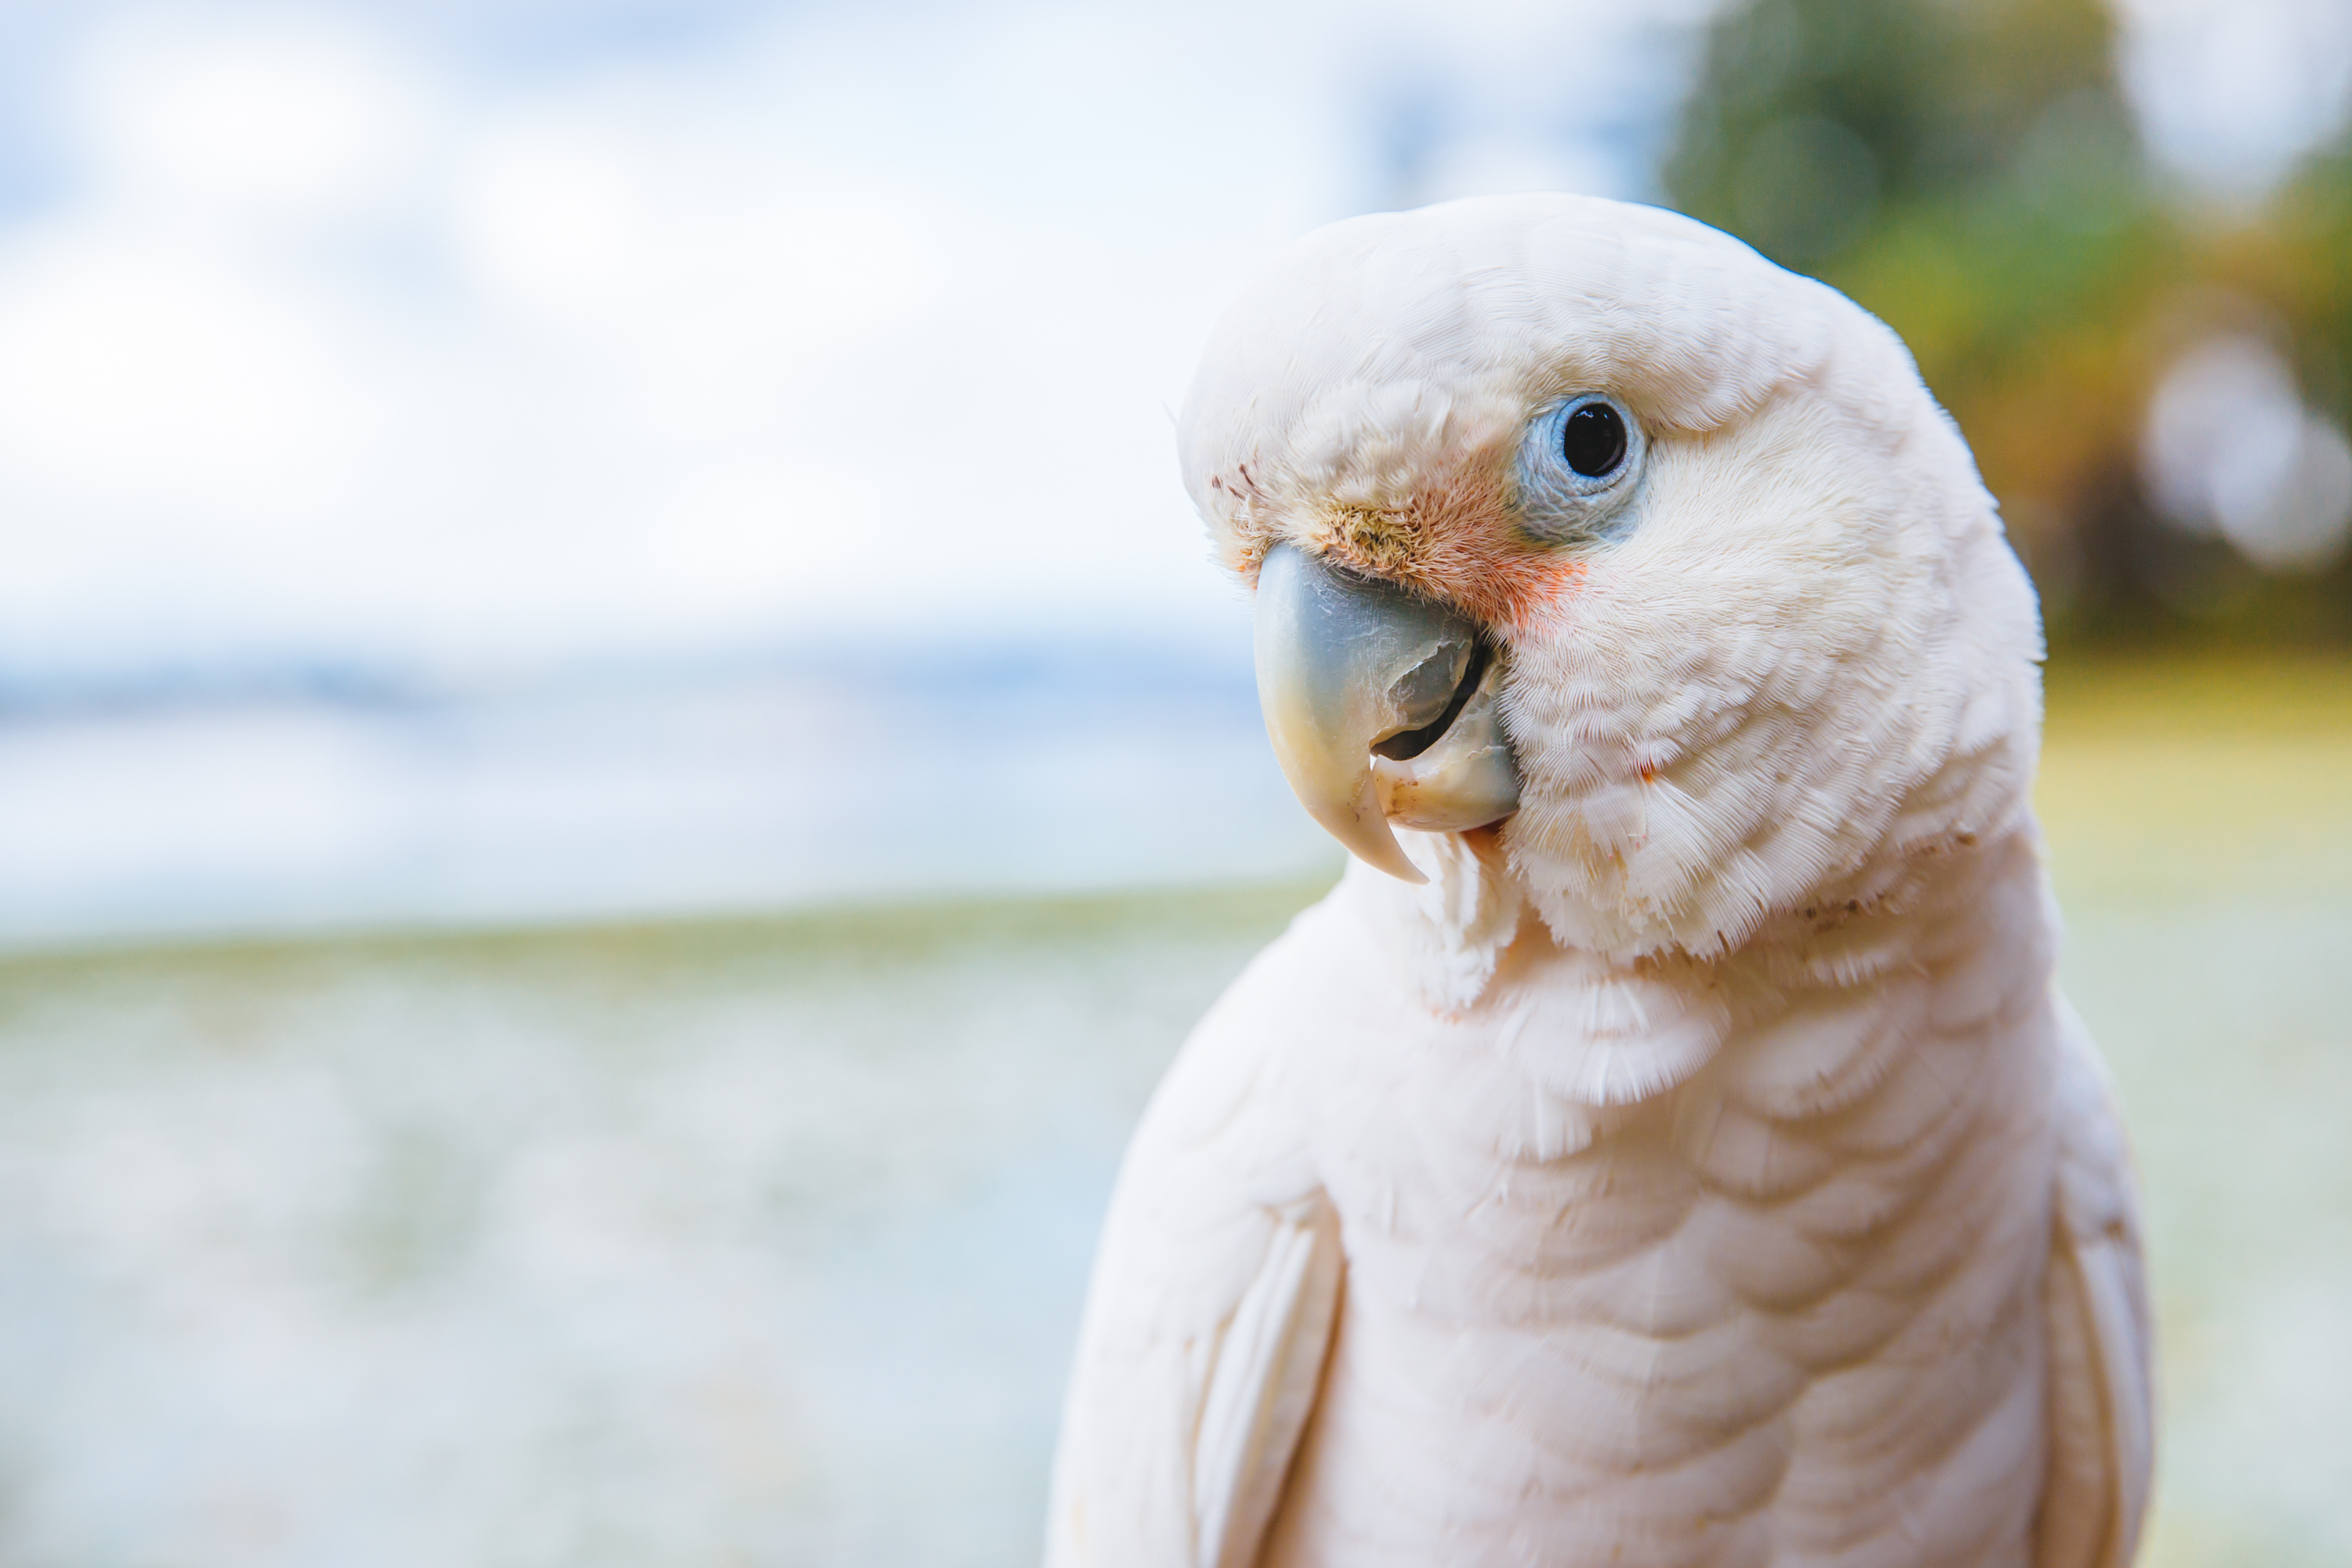 "We've featured cats and dogs but it's time to feature our first ever Cockatoo! TWEET TWEEEEET! Meet Peach McFly the Goffin's Cockatoo. He is 18 years young and is a ""free-flying socialite cockatoo who can be found playing and socializing at local parks."" Now that's my kinda bird. Peach McFly likes peanut butter, car rides, and flirting. He dislikes broccoli, vacuum cleaners, and being caged! The Seattle RUFFined Spotlight is a weekly profile of local pets living and loving life in the PNW. If you or someone you know has a pet you'd like featured, email us at hello@seattlerefined.com or tag #SeattleRUFFined and your furbaby could be the next spotlighted! (Image: Sunita Martini / Seattle Refined)"